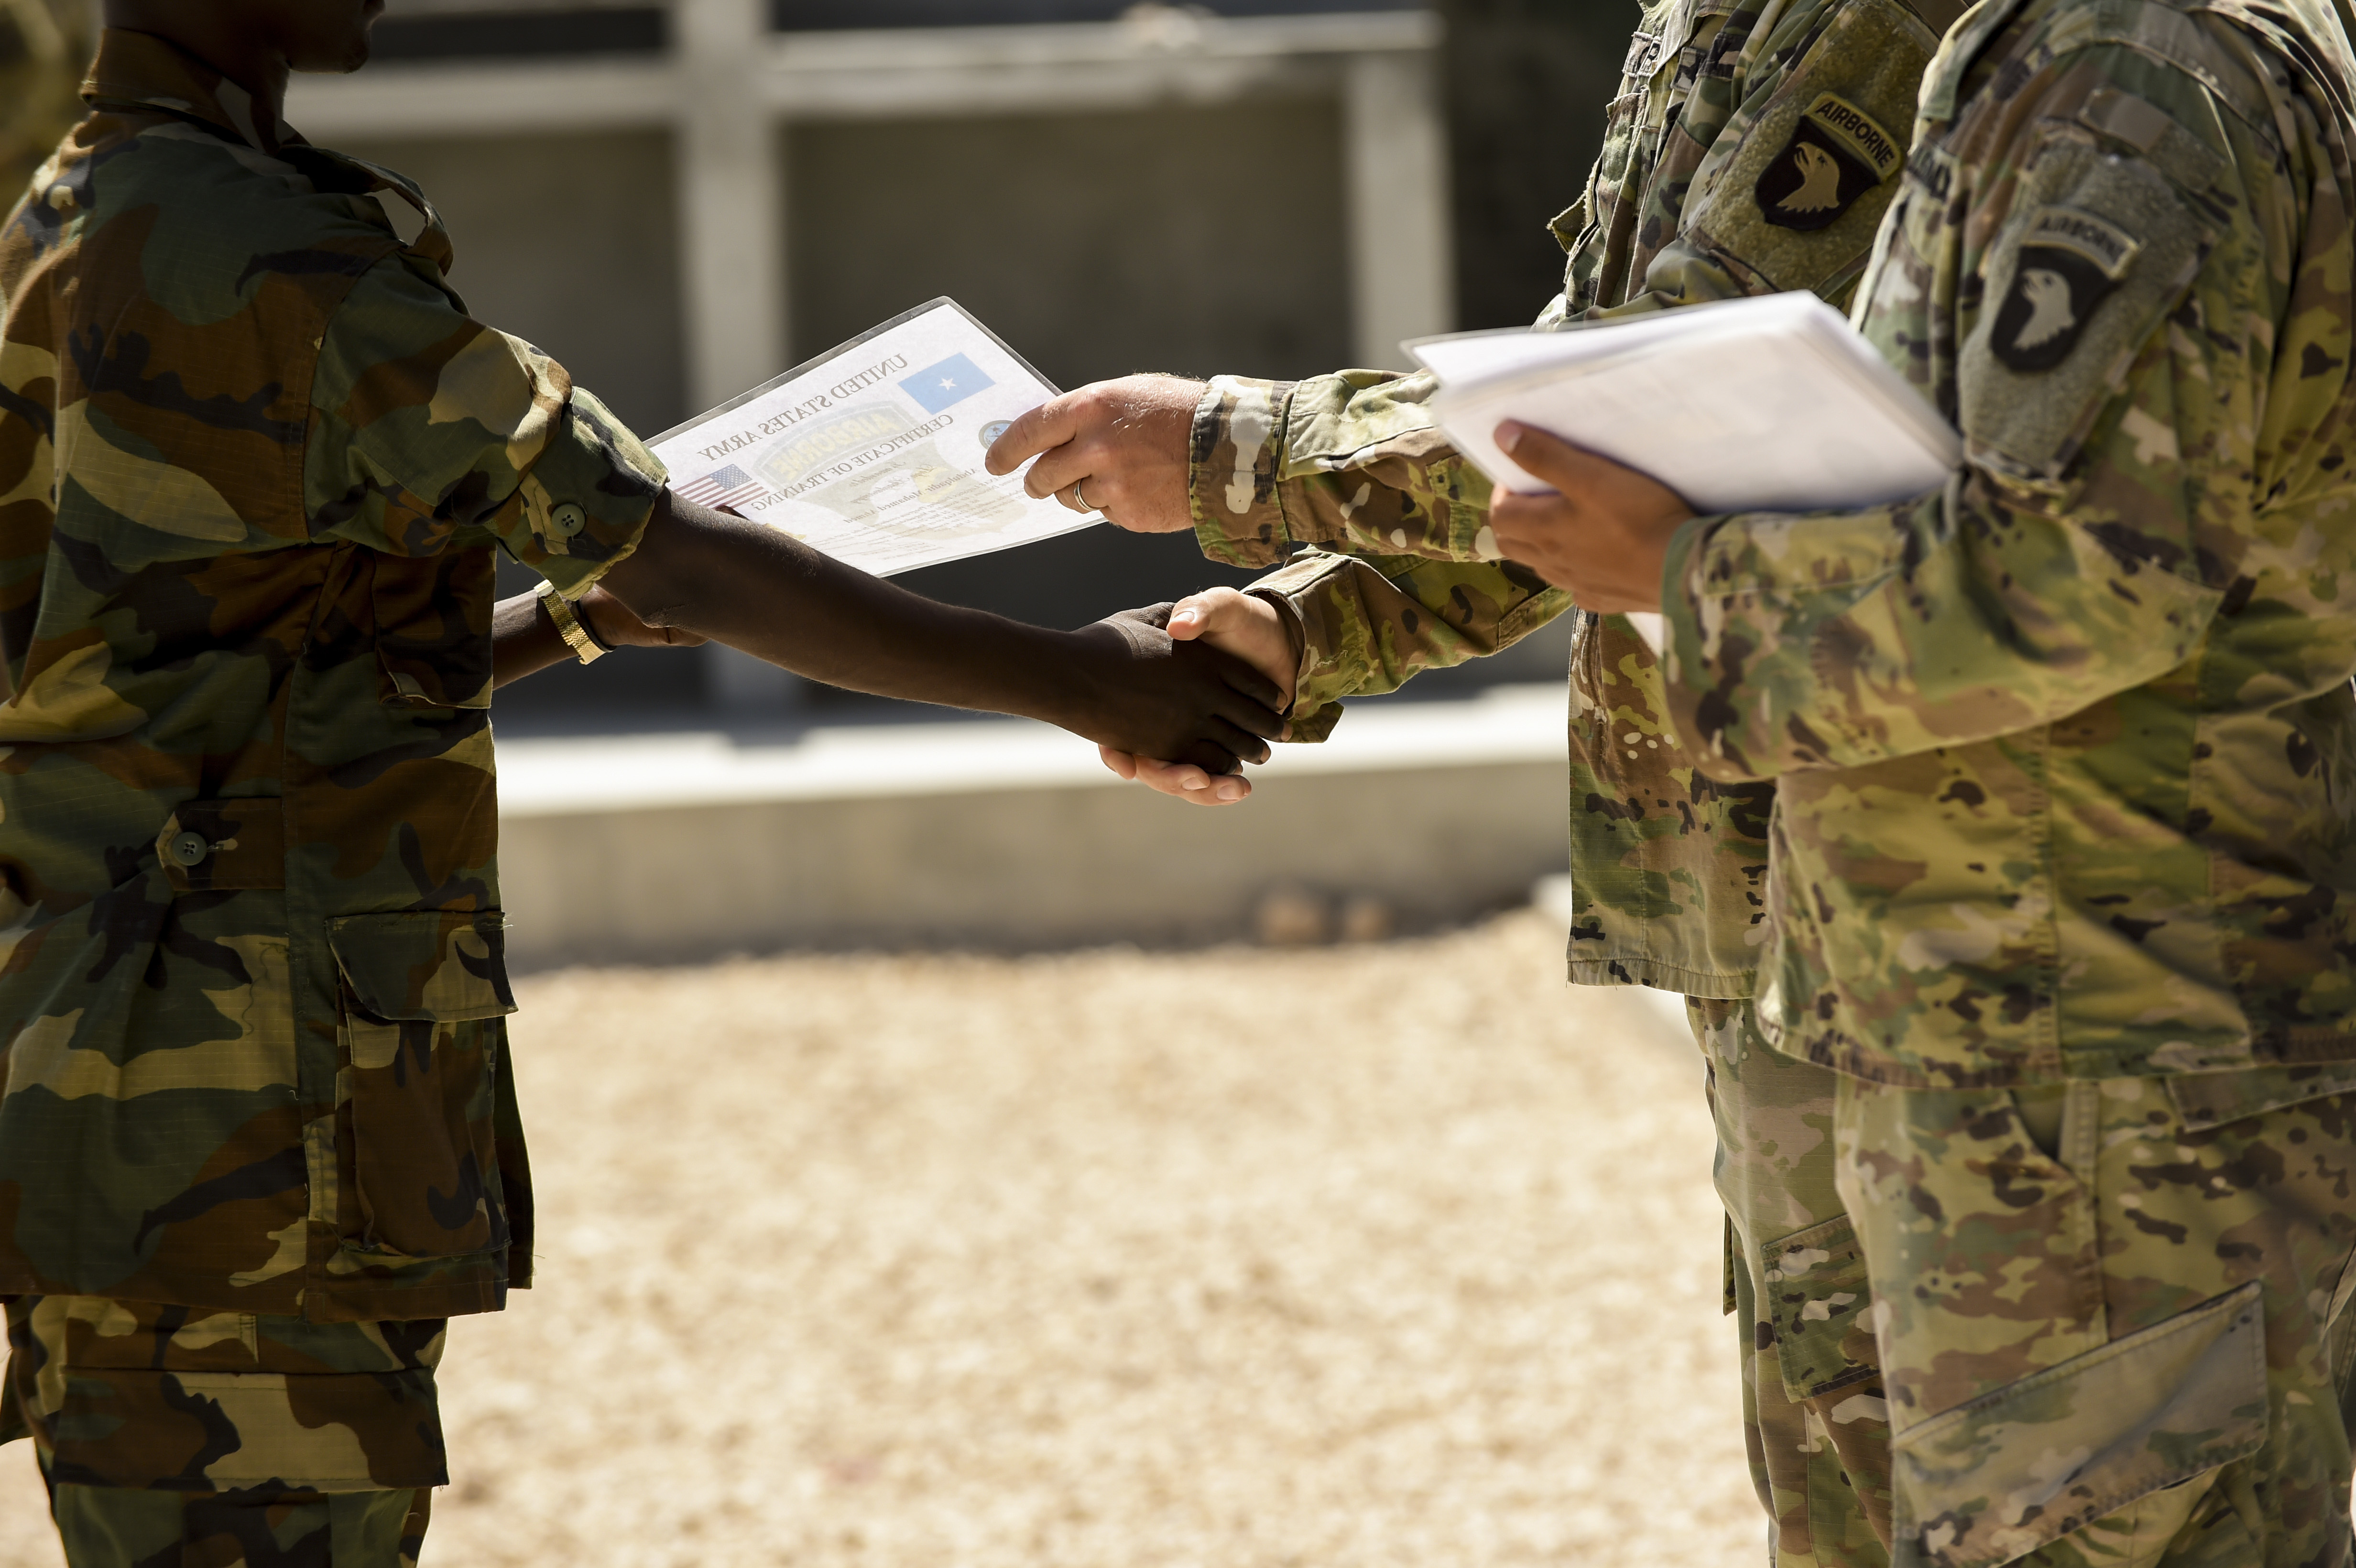 Soldiers from the U.S. Army's 101st Airborne Division present certificates of training completion to Somali National Army soldiers during a graduation ceremony May 24, 2017, in Mogadishu Somalia. The six-week course focused on various aspects of moving personnel, equipment and supplies. (U.S. Air Force photo by Staff Sgt. Nicholas M. Byers)